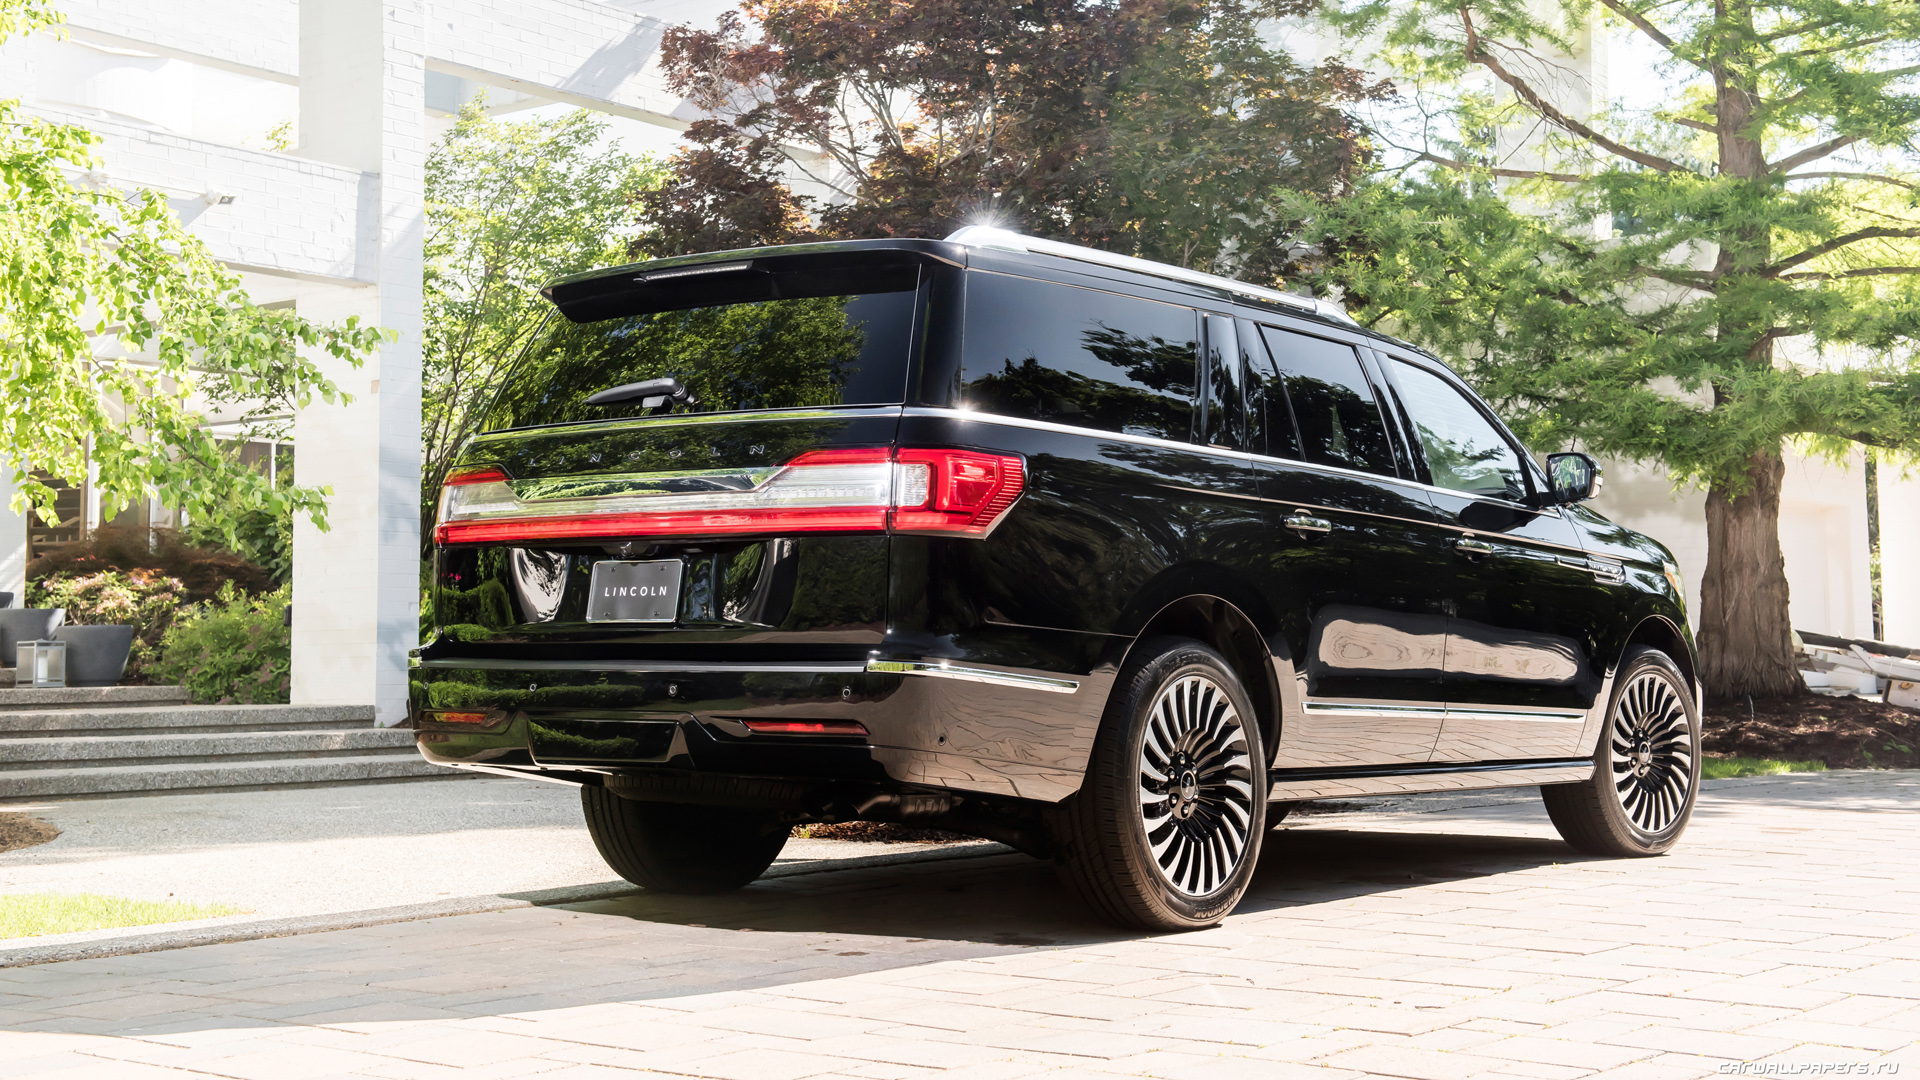 Lincoln navigator wallpapers